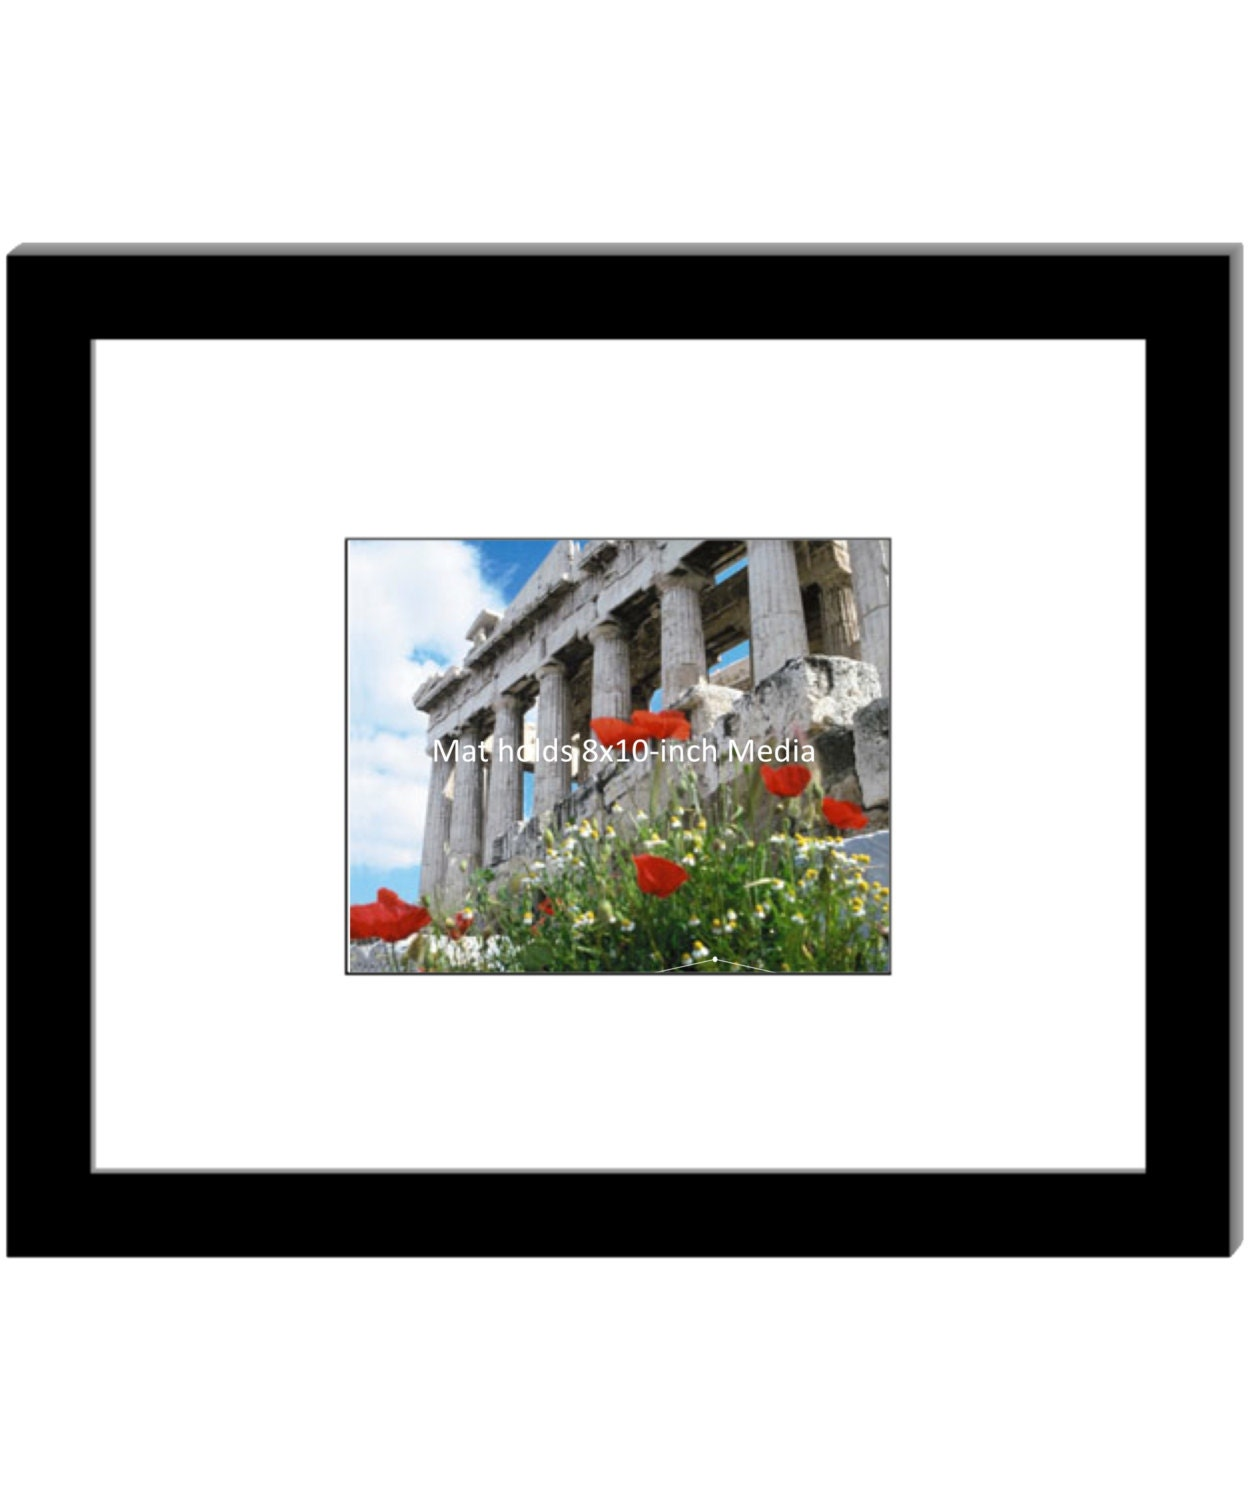 8x10 Inch Mat With 16 By 20 Inch Picture Frame